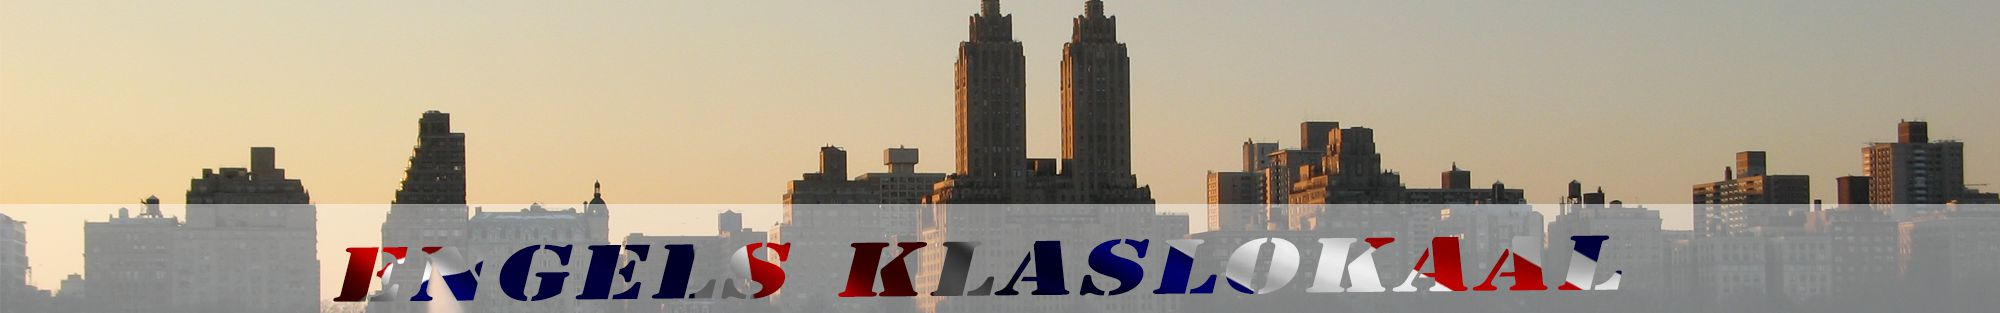 skyline van new york header engels klaslokaal